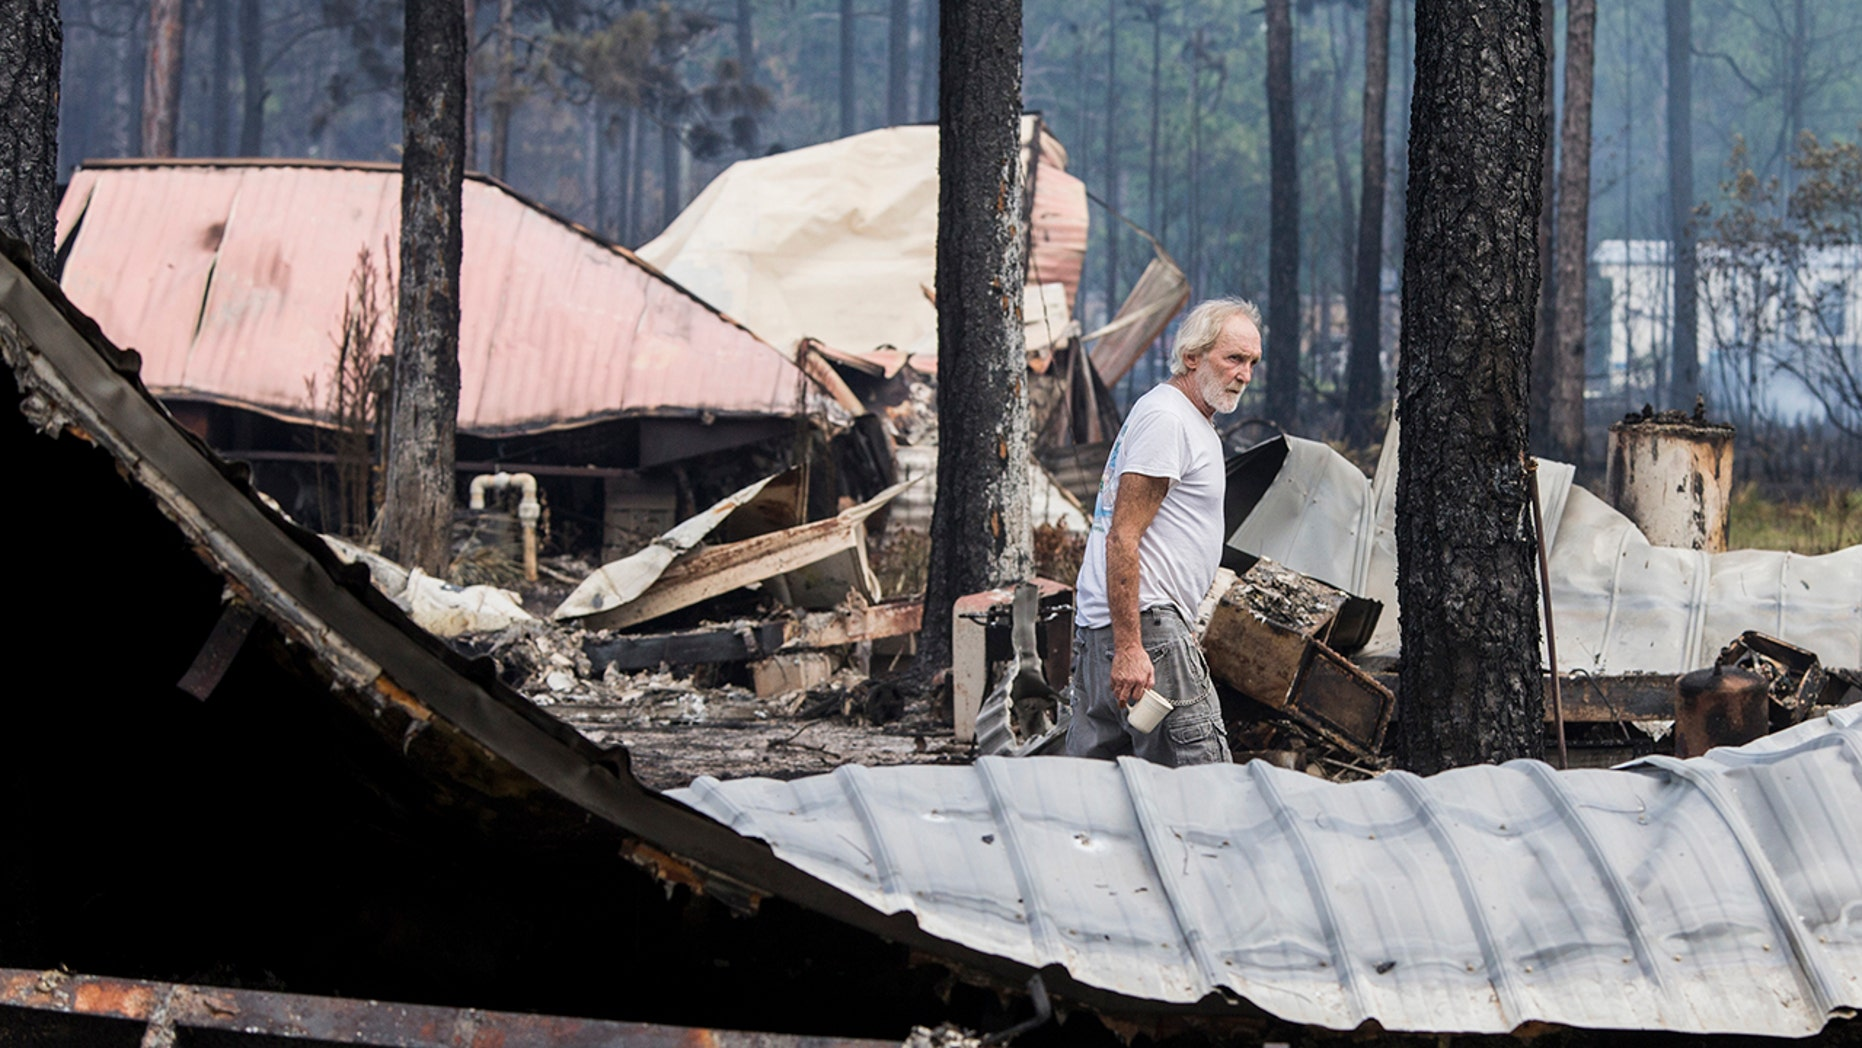 Earl Moss looks over his burned home, foreground, after wildfires swept through his neighborhood on Ridge Road in Eastpoint, Fla., Monday, June 25, 2018. (AP Photo/Mark Wallheiser)